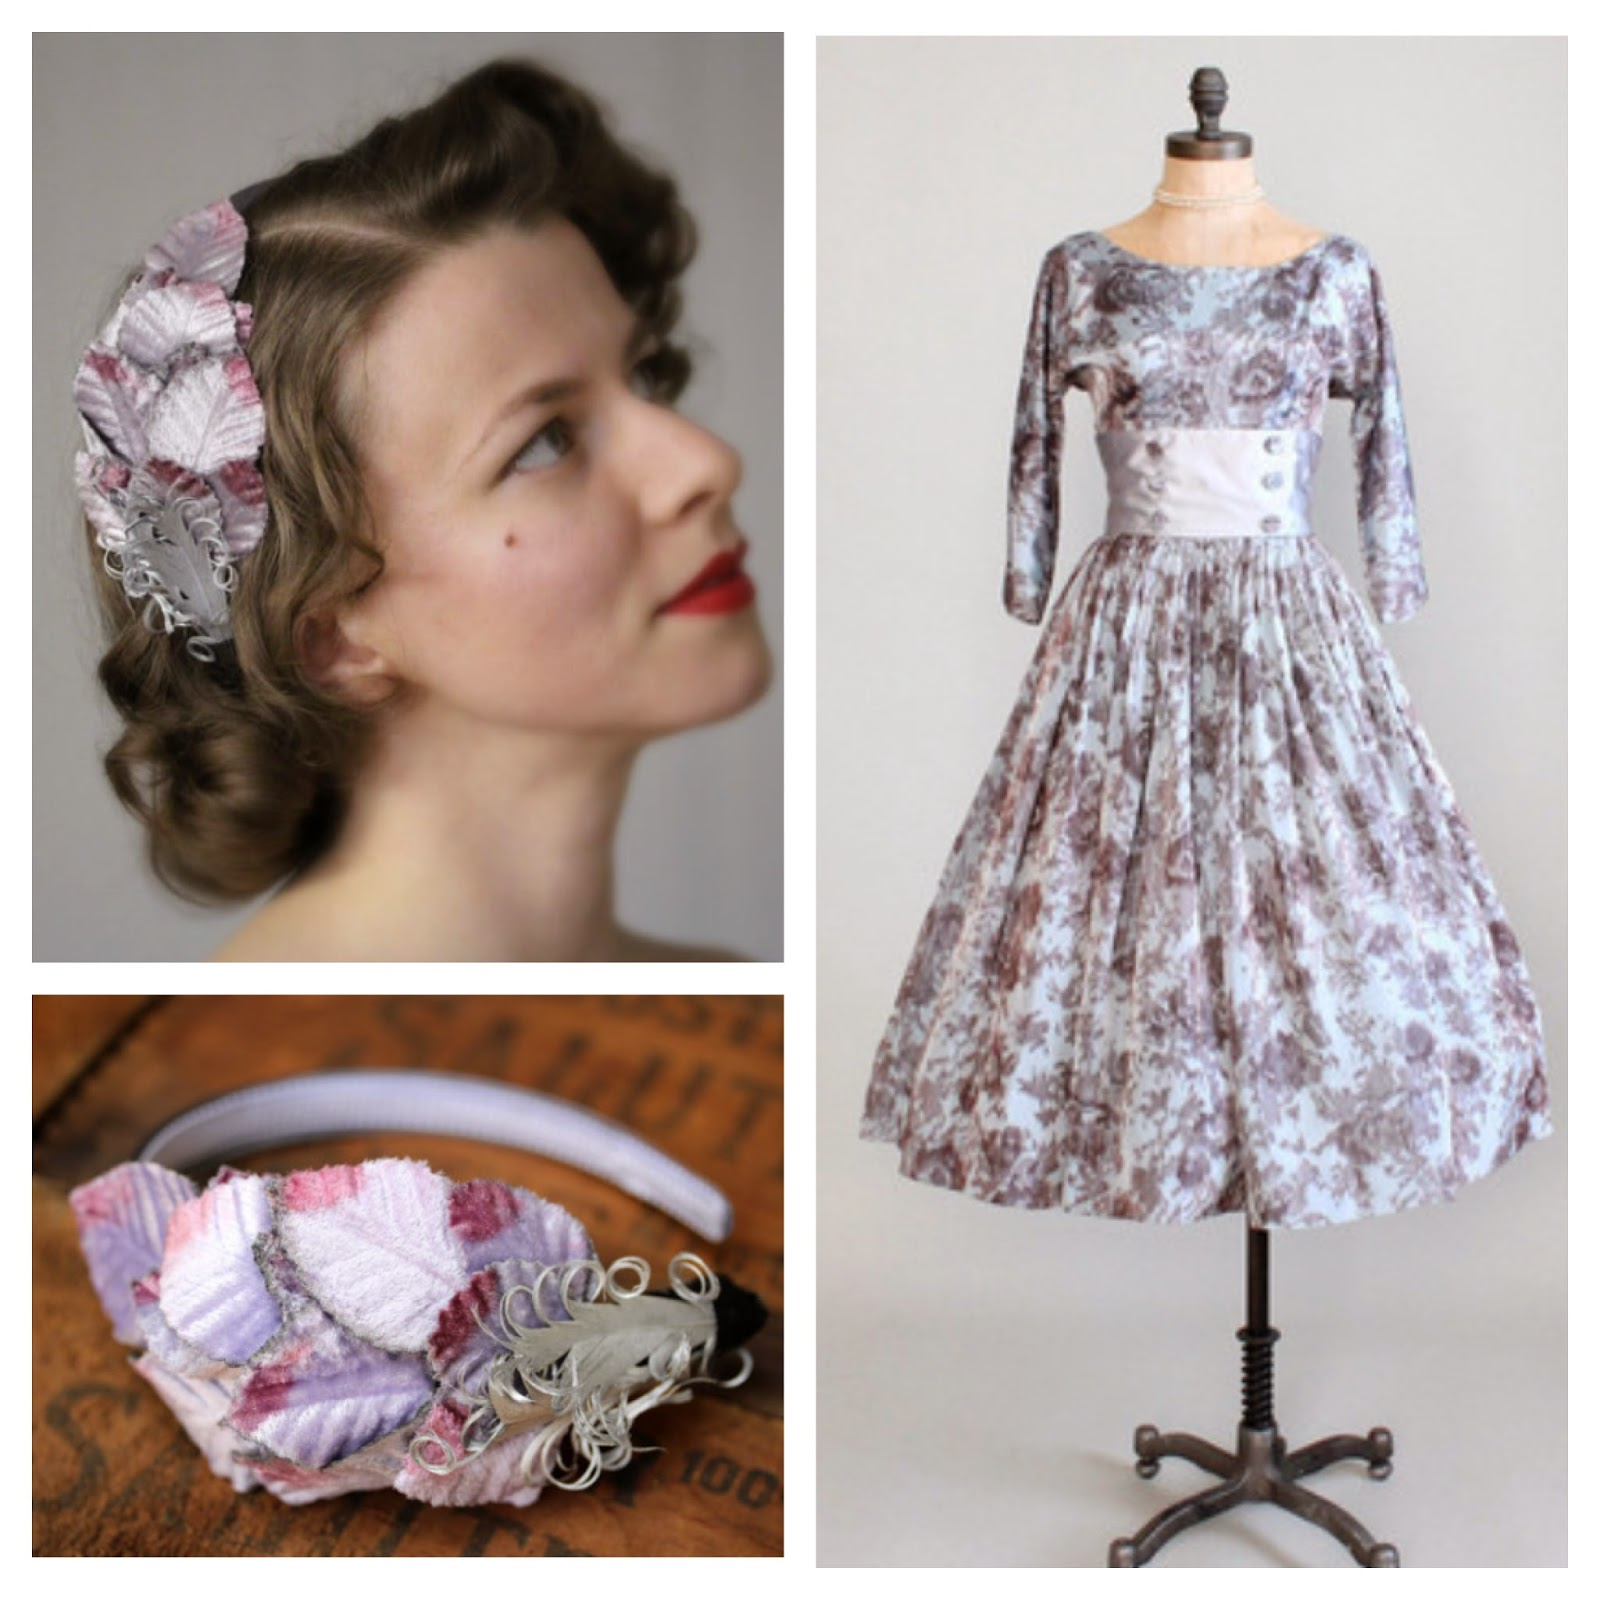 1950s Lavender Lovesong #1950s #dress #lavender #gray #vintage #hair #fashion